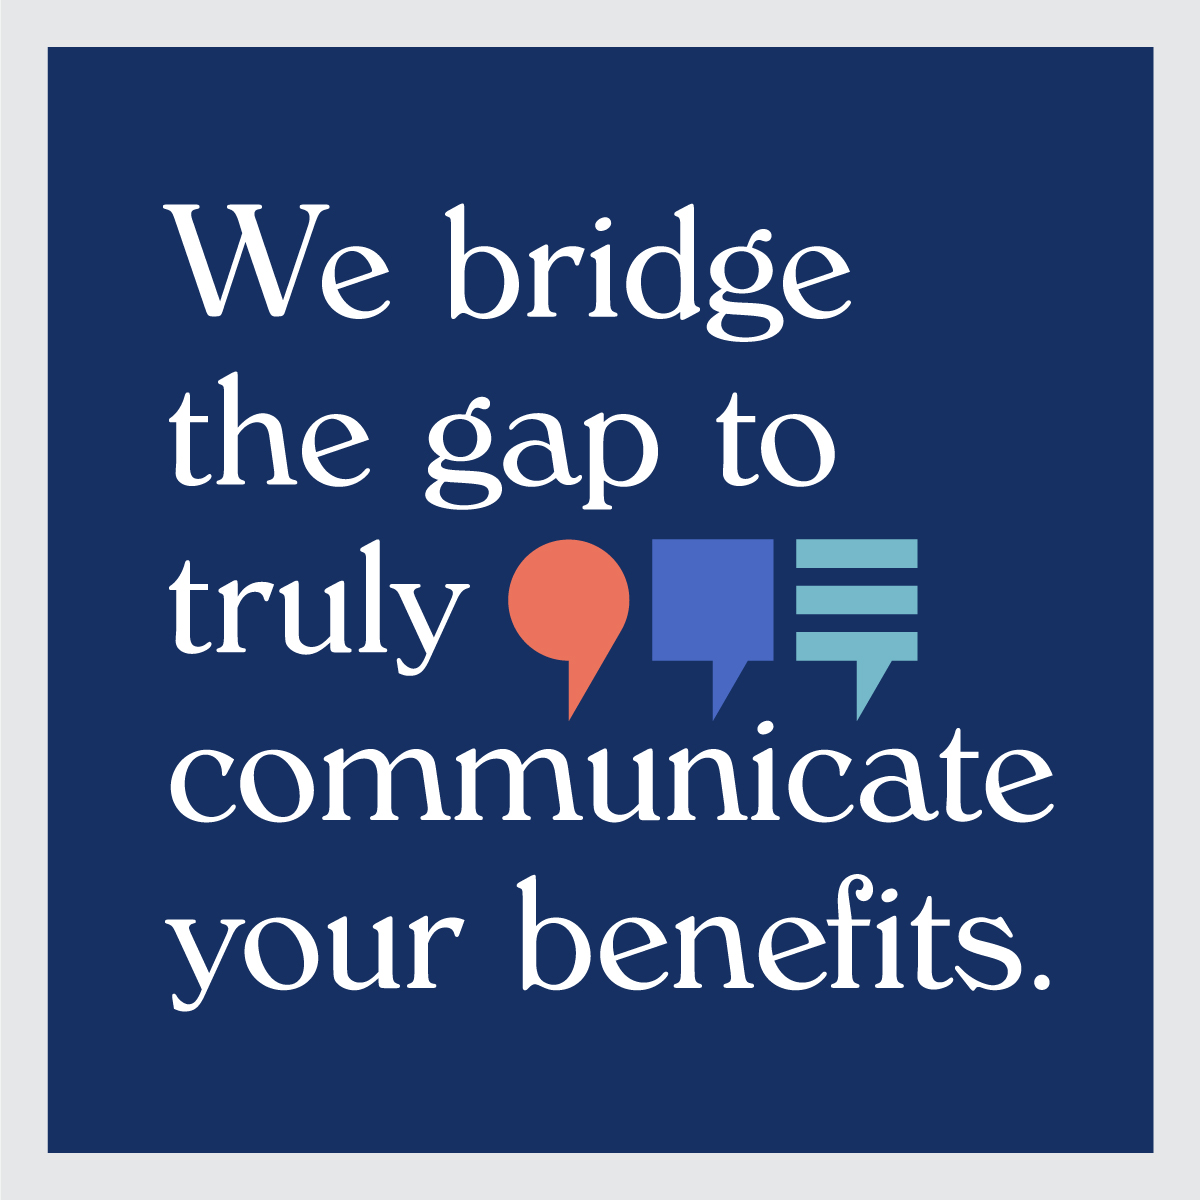 We bridge the gap to truly communicate your benefits.